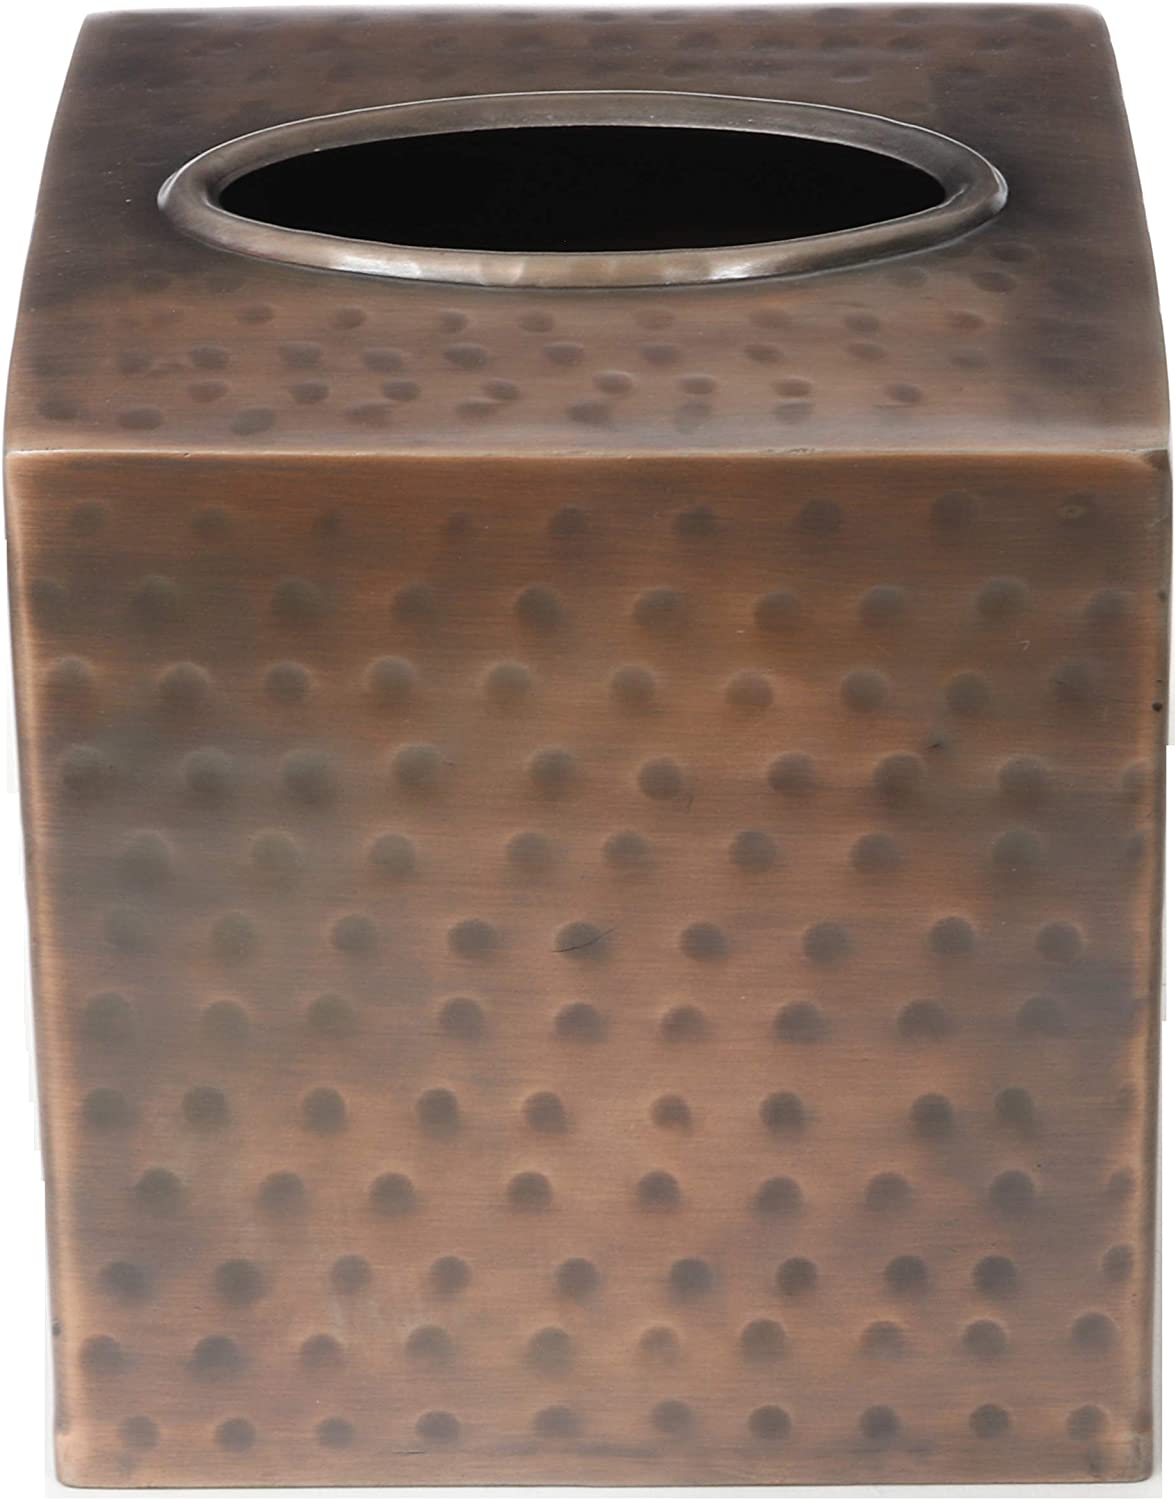 Monarch Abode Copper Finish Hand Hammered Metal Tissue Box Cover: Home & Kitchen